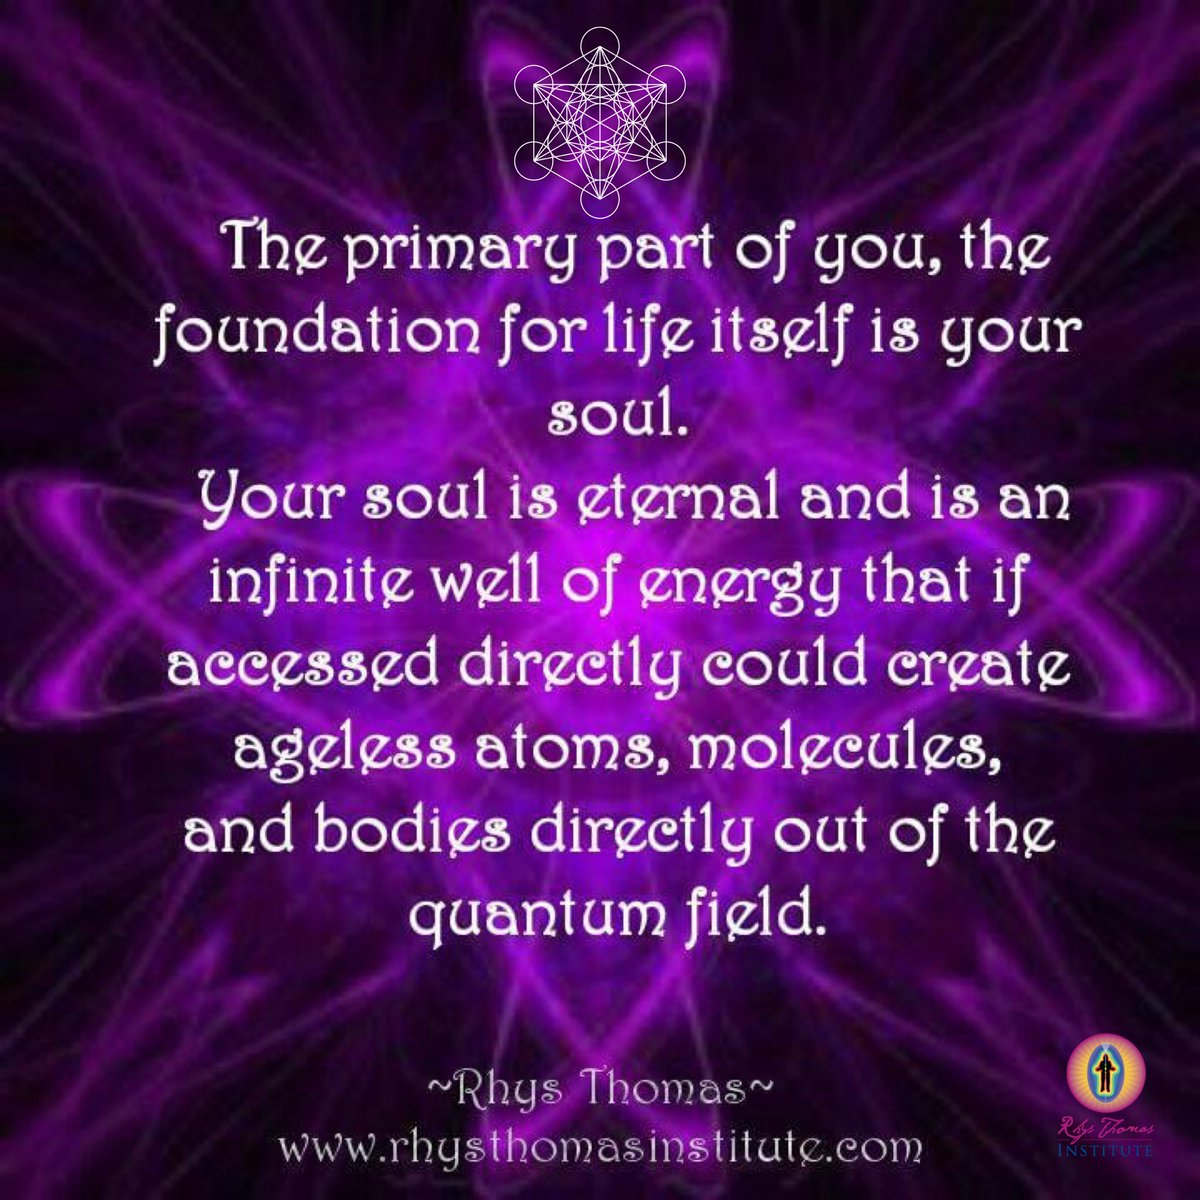 #soul #eternal #infinite  #energy #ageless #soulguidance #wisdom #quoteoftheday   #spiritualawakening #thursdaymorning #ThursdayThoughts